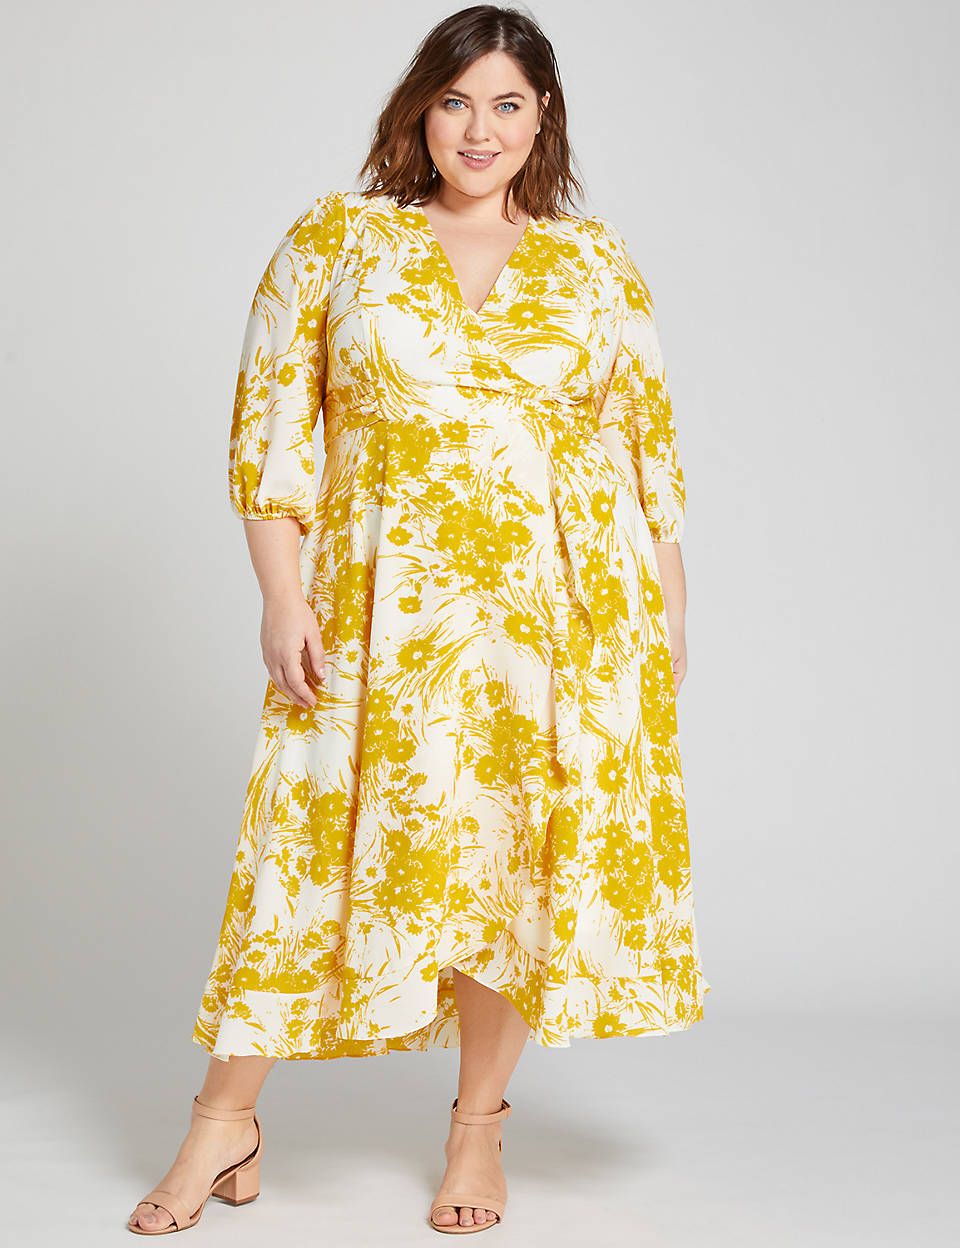 May Plus Size Style Horoscope- Floral Crossover Midi Dress